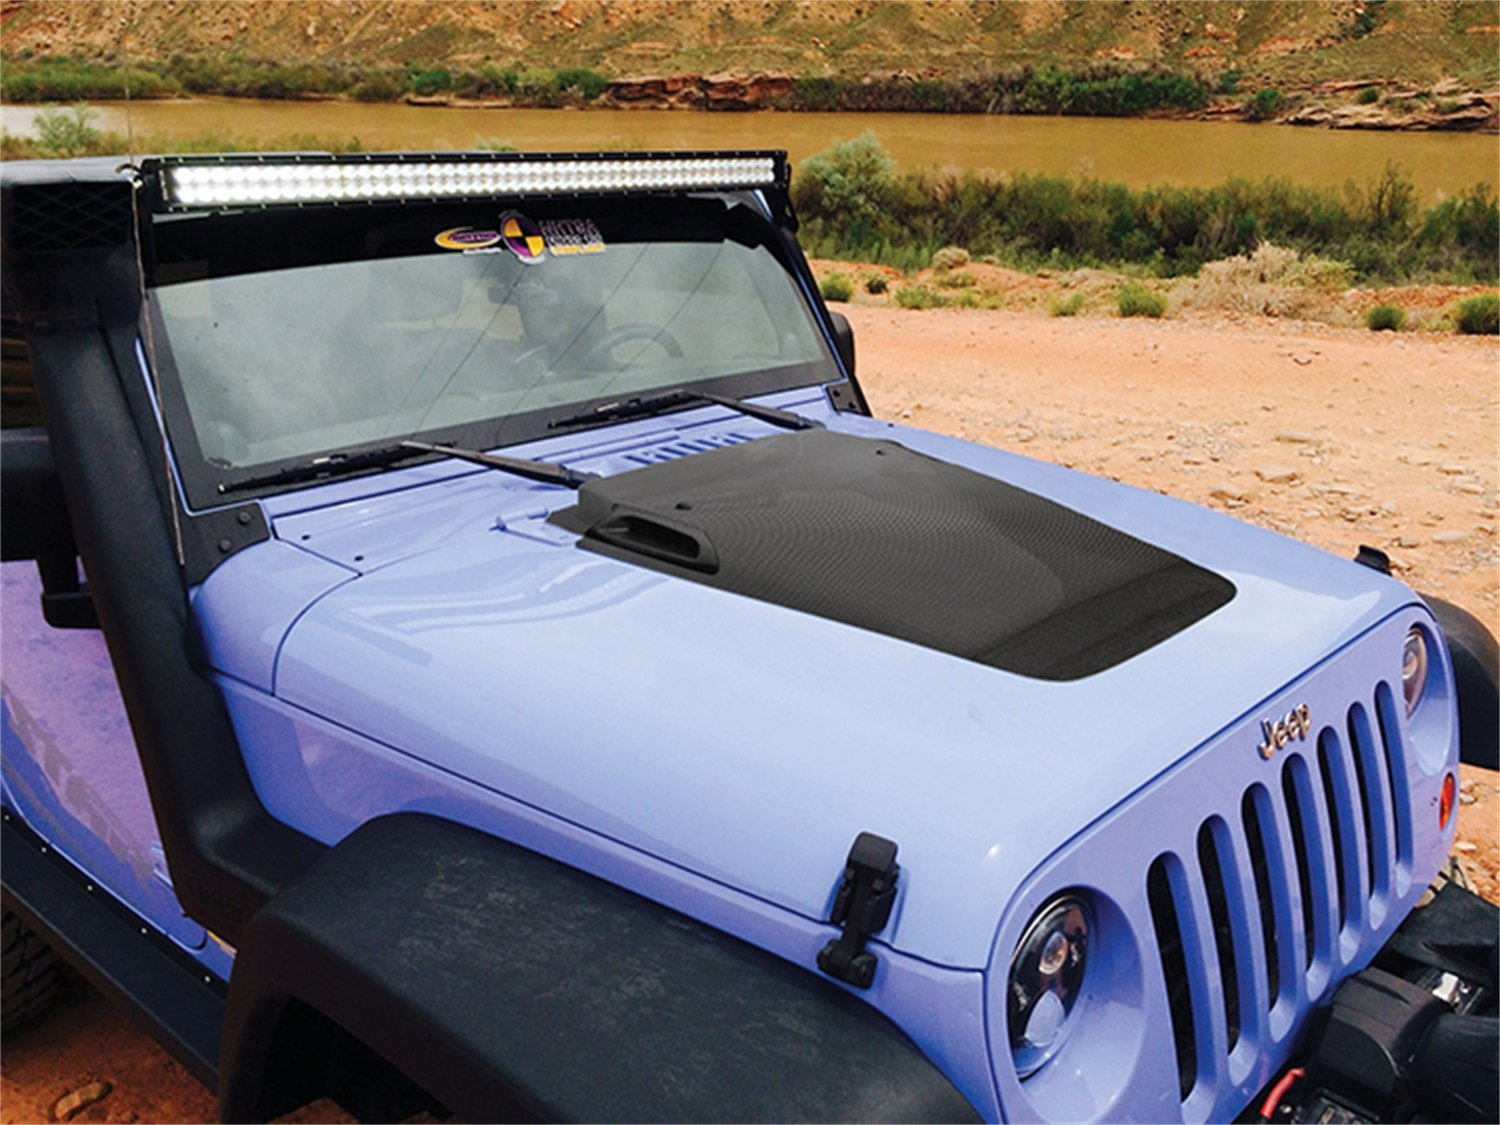 Jeep JK Wrangler Hood Wrangler Daystar fits 2007 to 2017 2//4WD stop hood flutter and keep your hood securely shut Made in America Red KJ09145RE